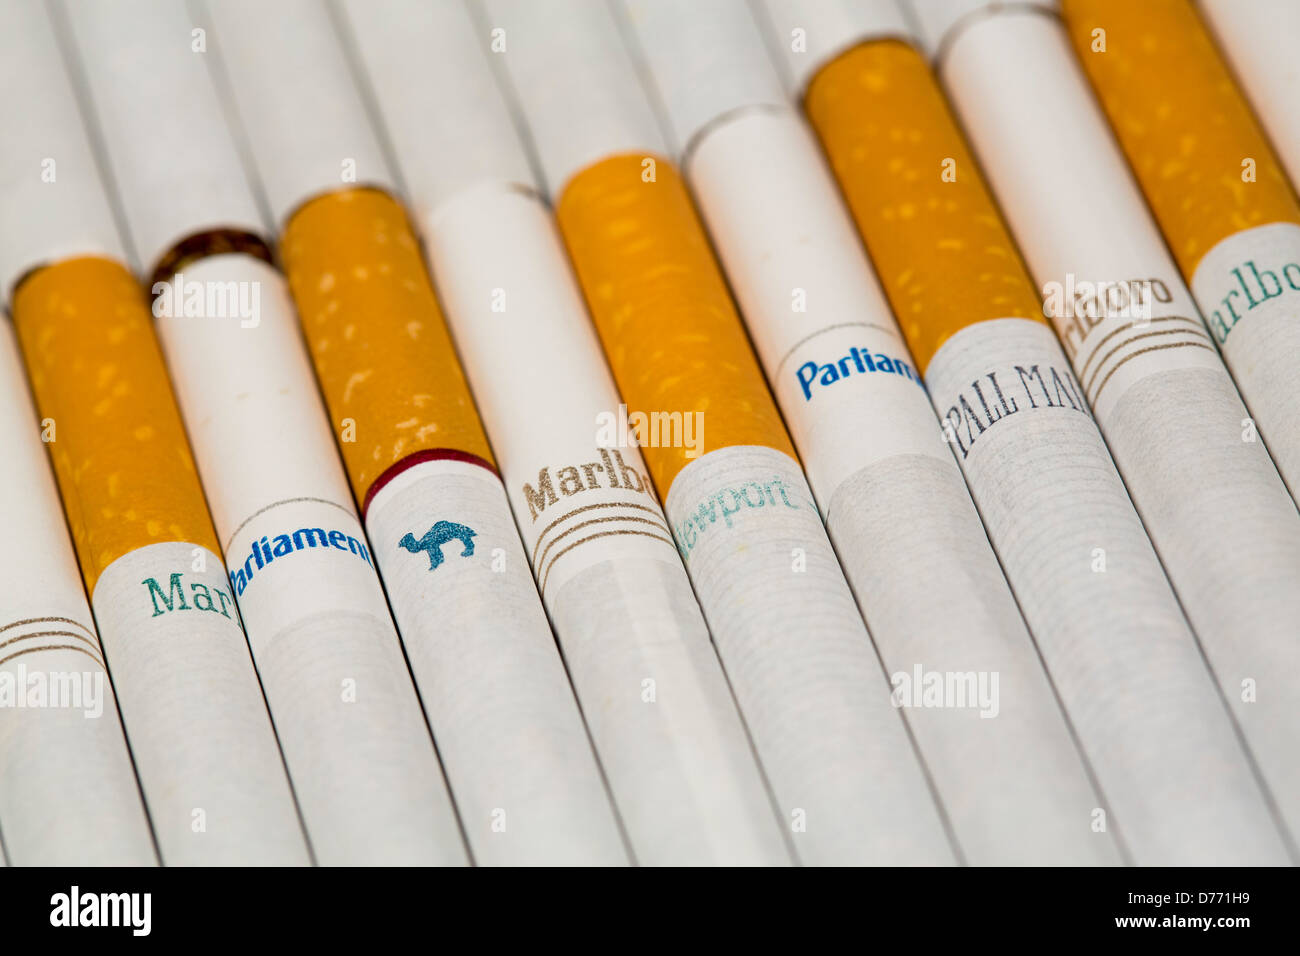 Cheapest place in longview to buy cartons of cigarettes Marlboro